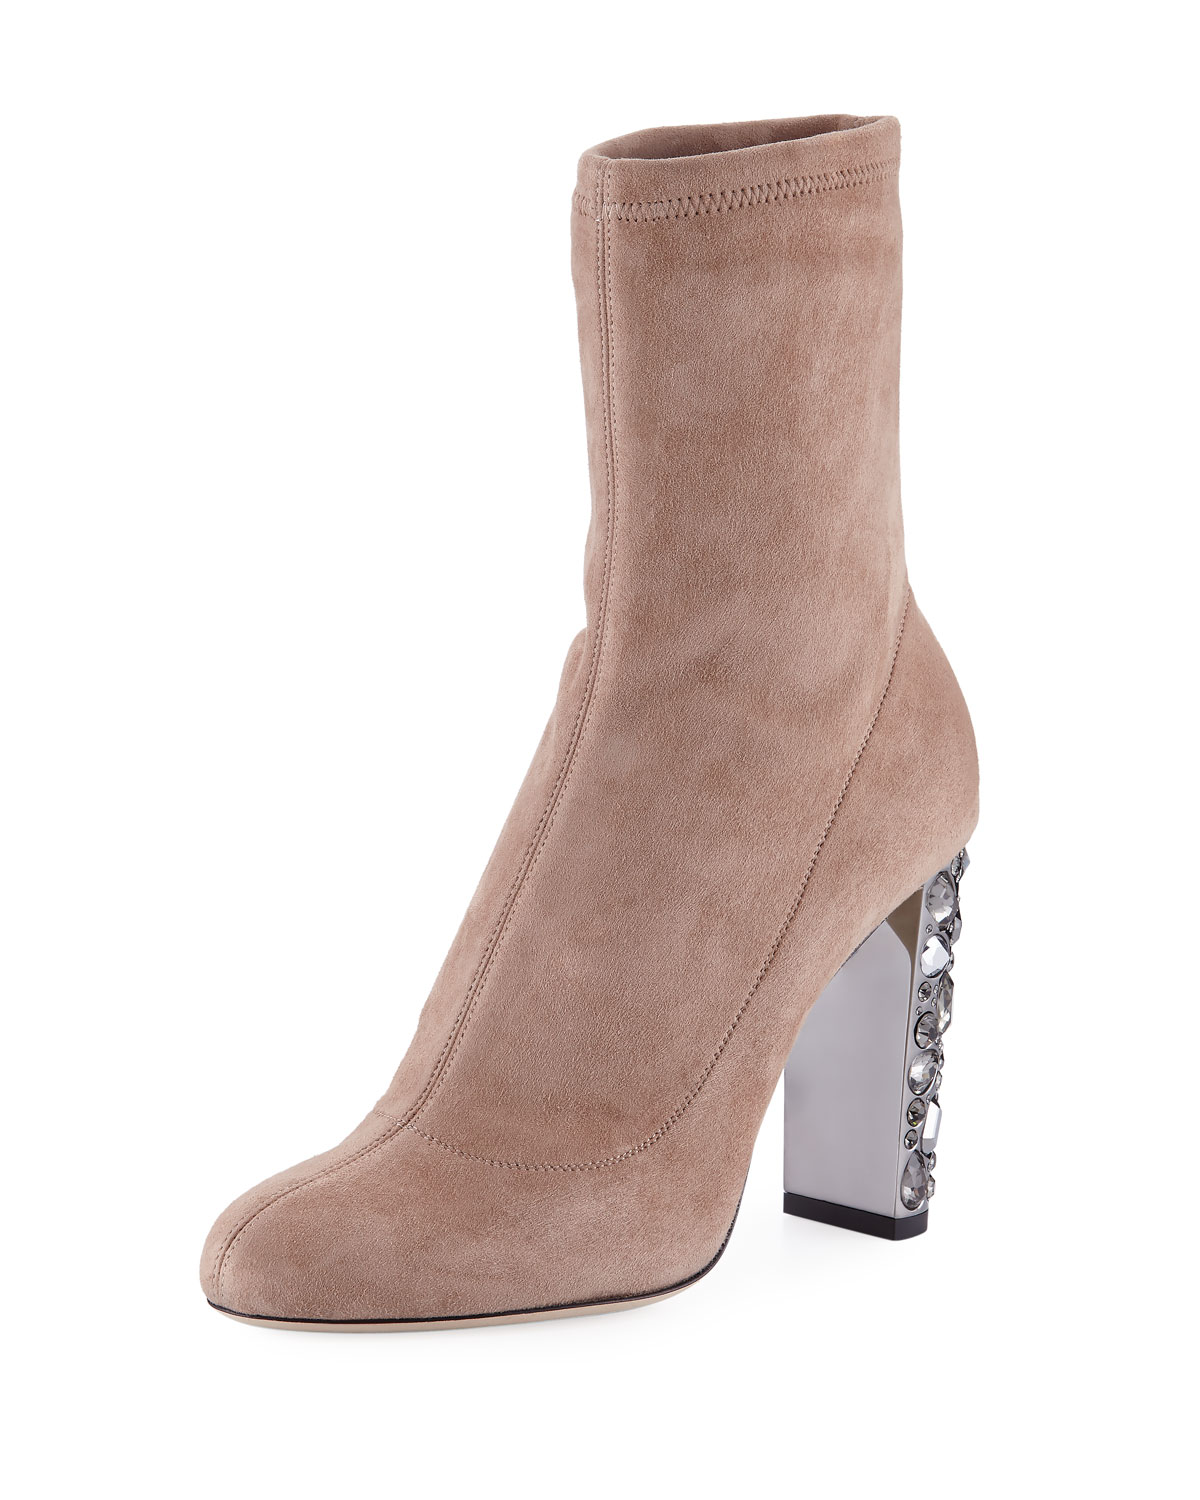 9375859dc8c Jimmy Choo Maine Stretch Suede Booties with Crystal Heel